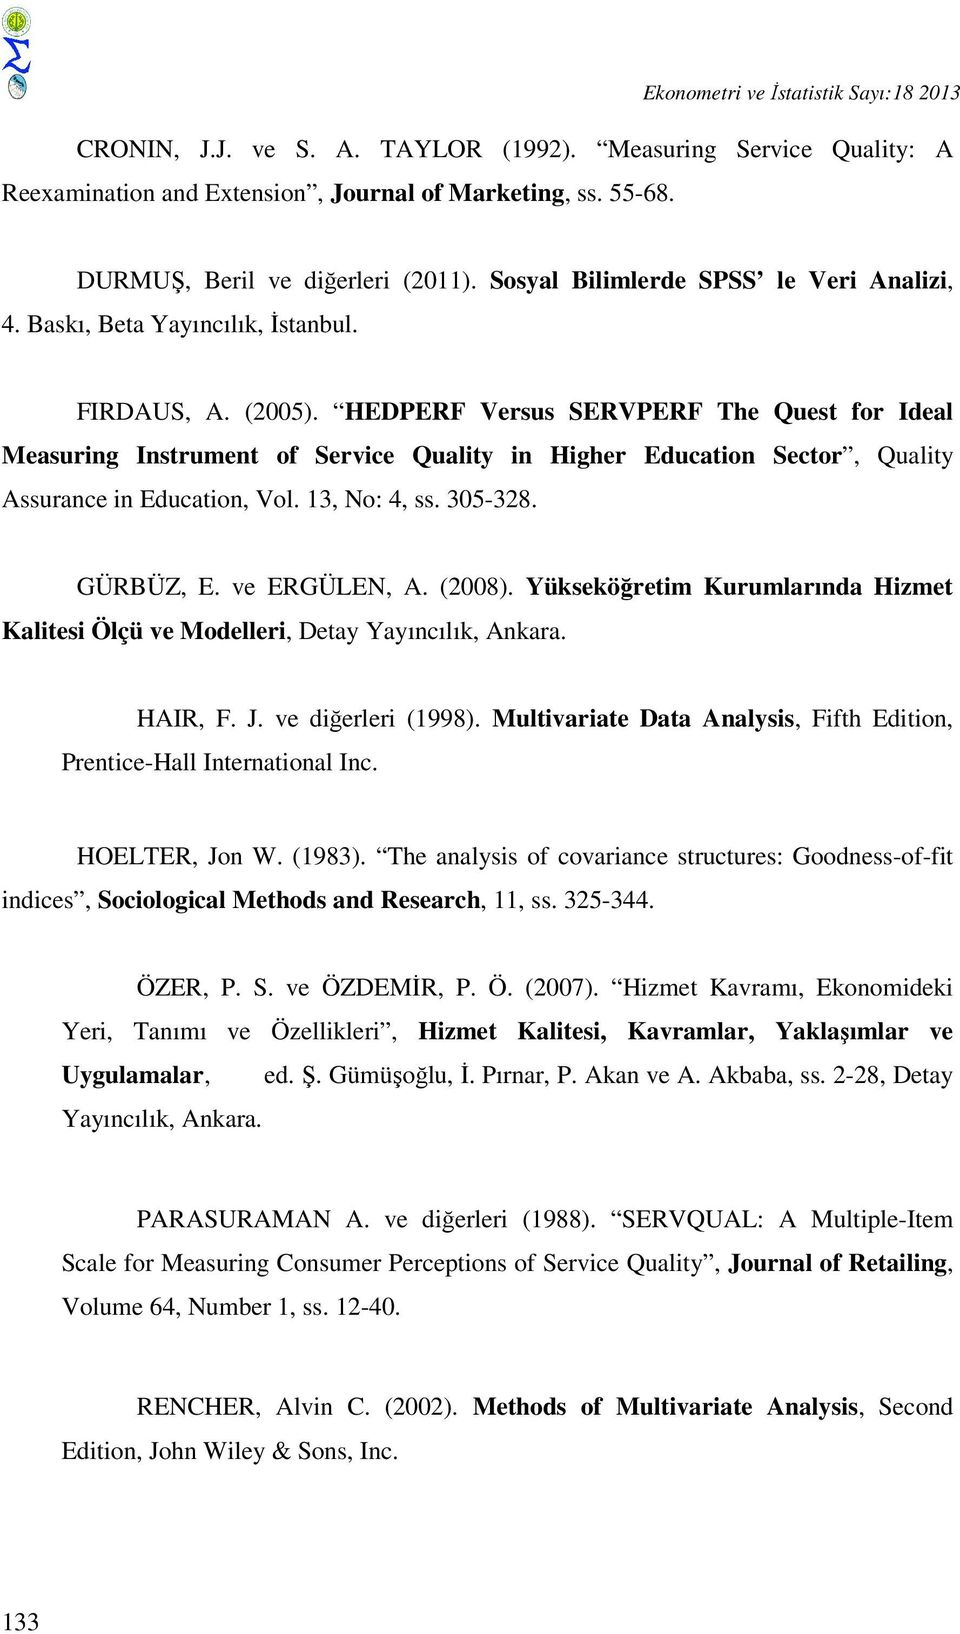 HEDPERF Versus SERVPERF The Quest for Ideal Measuring Instrument of Service Quality in Higher Education Sector, Quality Assurance in Education, Vol. 13, No: 4, ss. 305-328. GÜRBÜZ, E. ve ERGÜLEN, A.